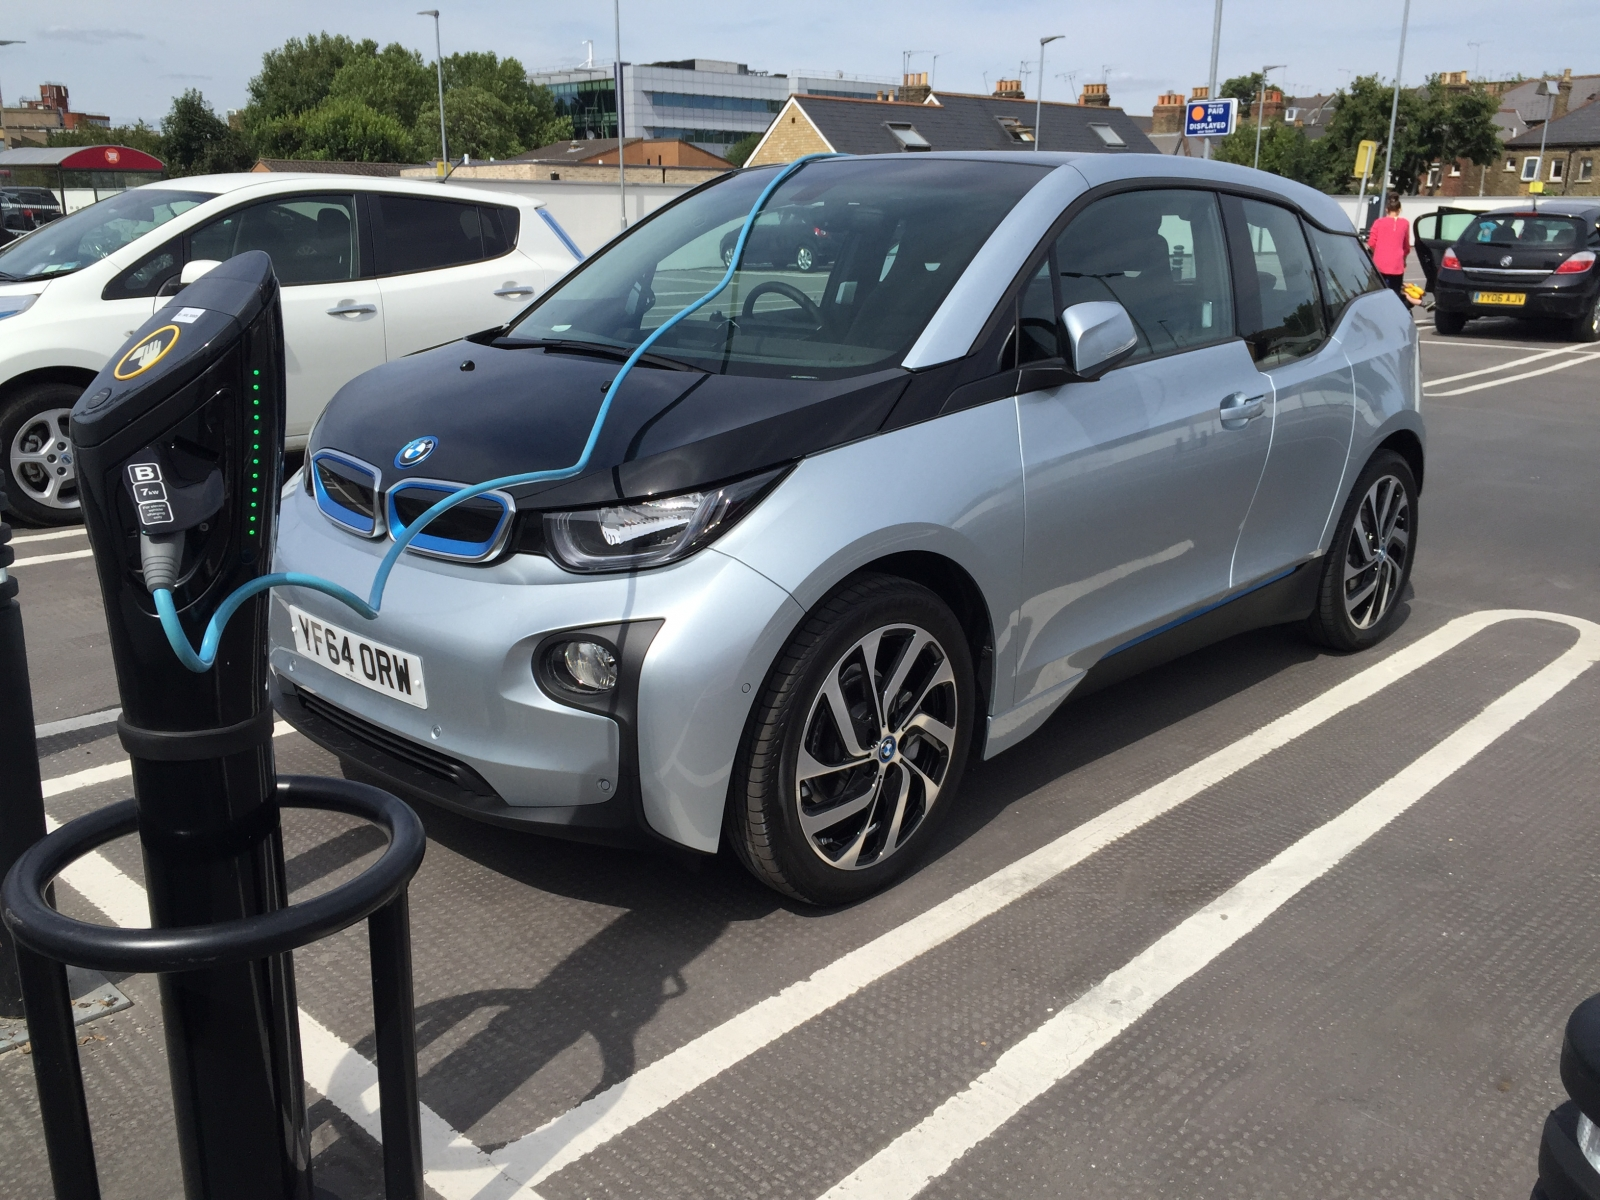 Electric Car Drivers Hit With Fee To Charge For Just Minutes